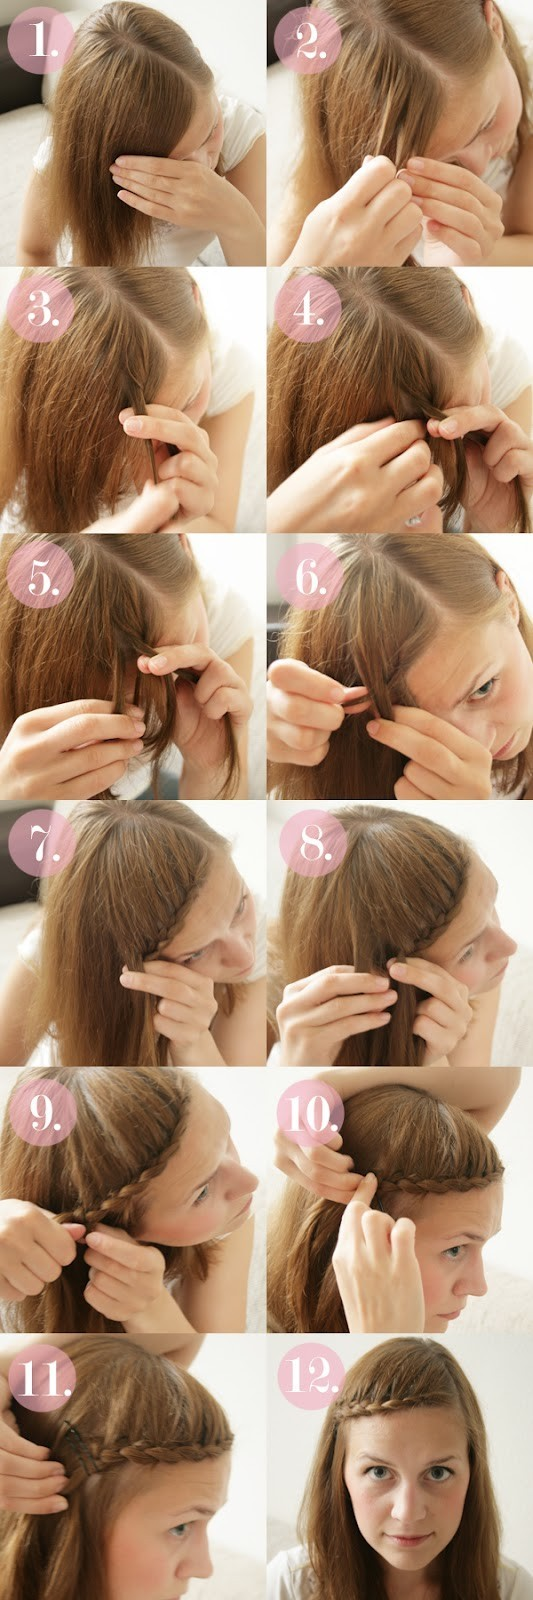 Prime 15 Braided Bangs Tutorials Cute Easy Hairstyles Pretty Designs Hairstyles For Women Draintrainus